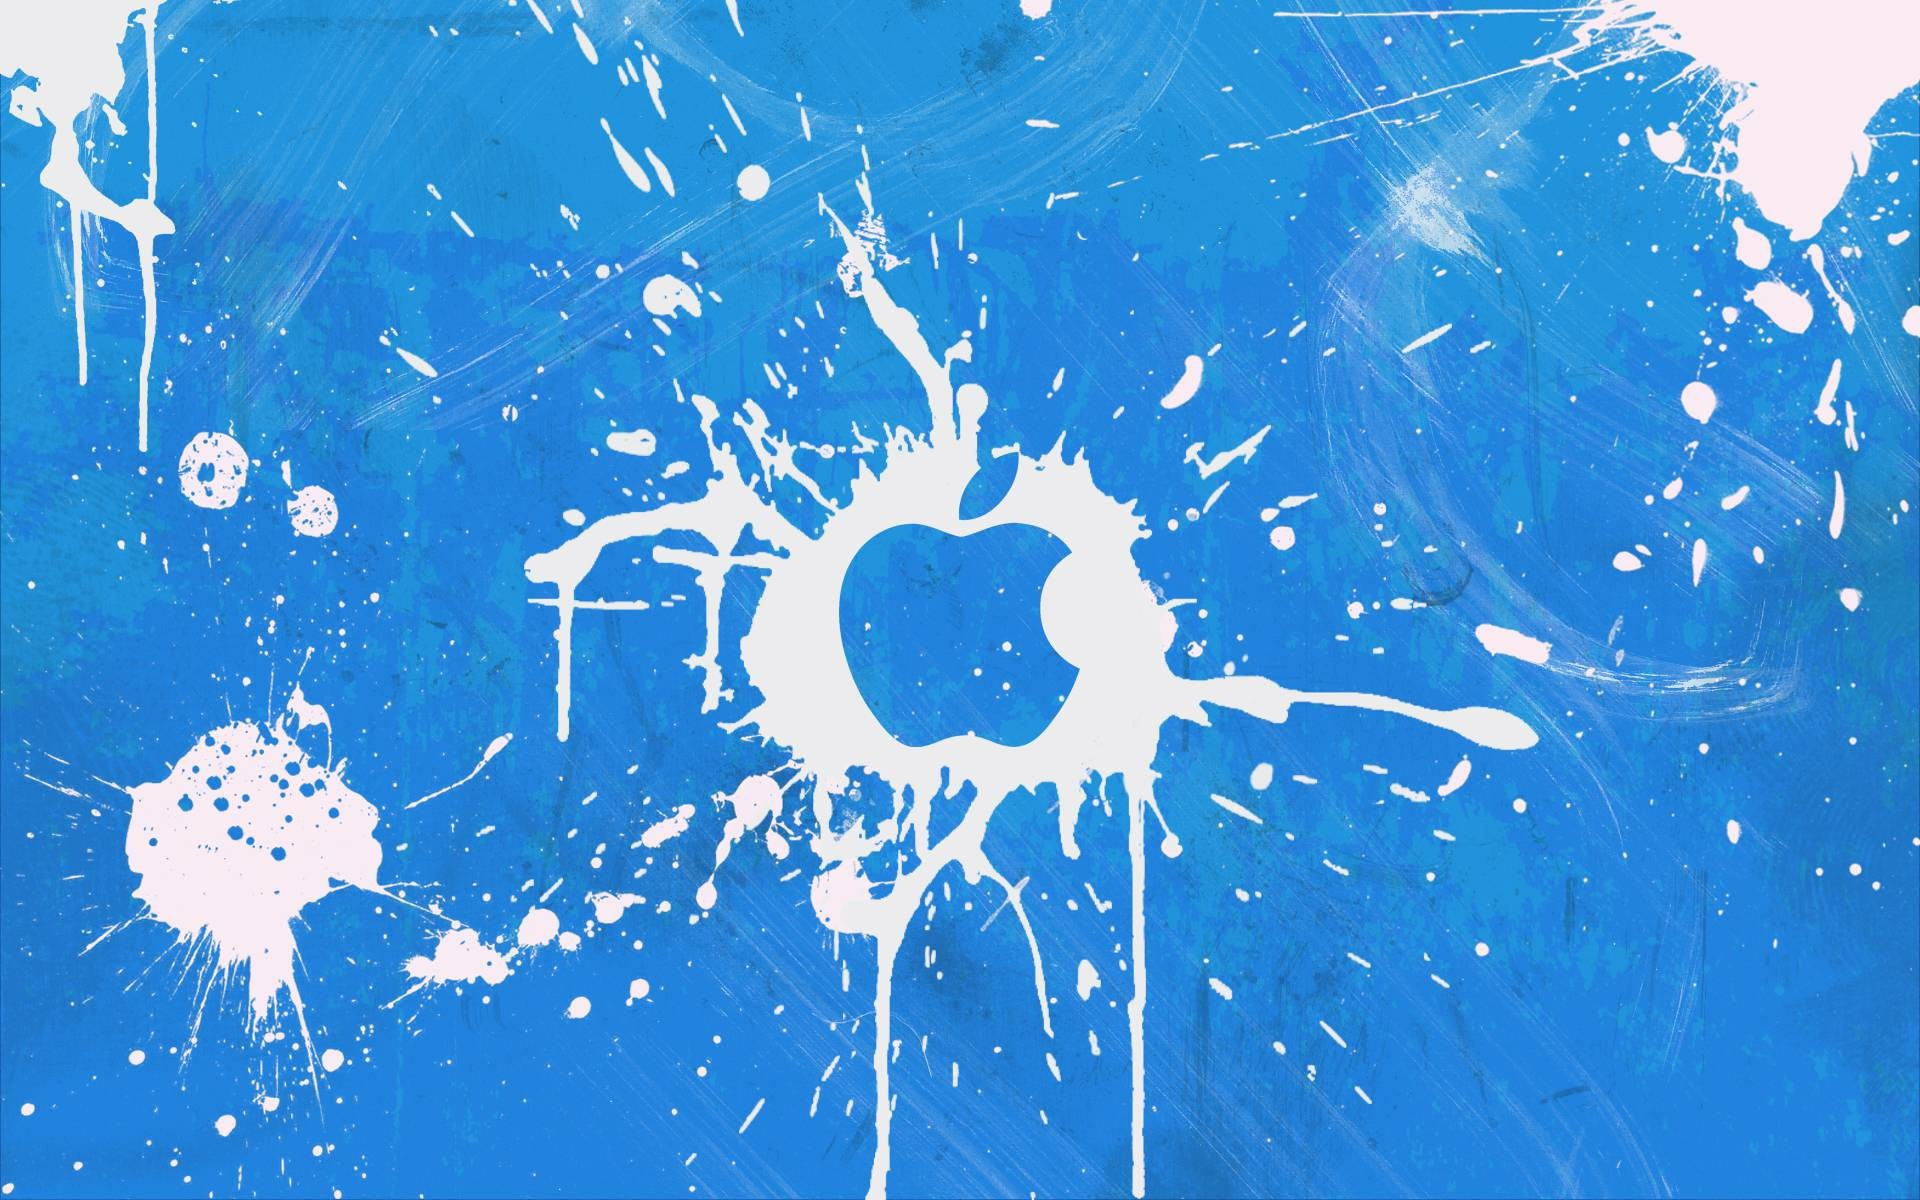 1920x1200 Cool Wallpaper Blue And Black